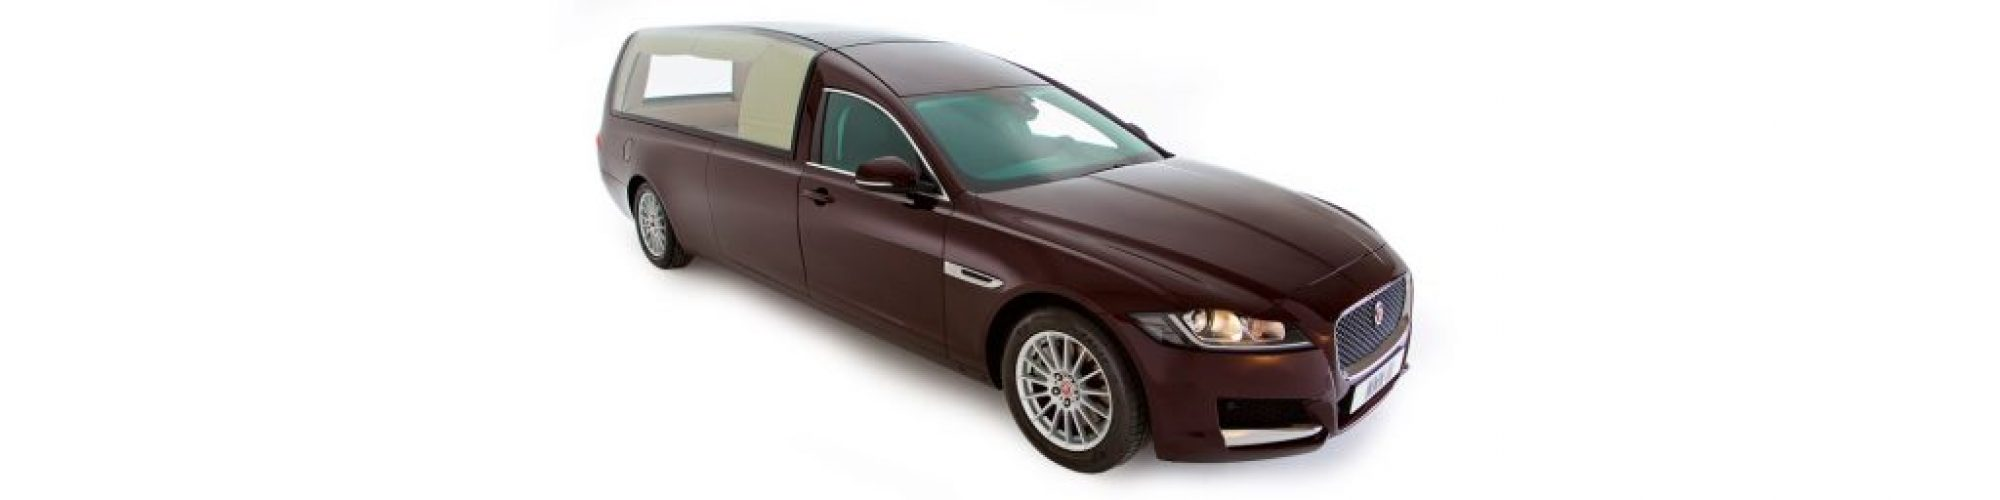 Wilcox 3 Door Hearse based on Jaguar XF